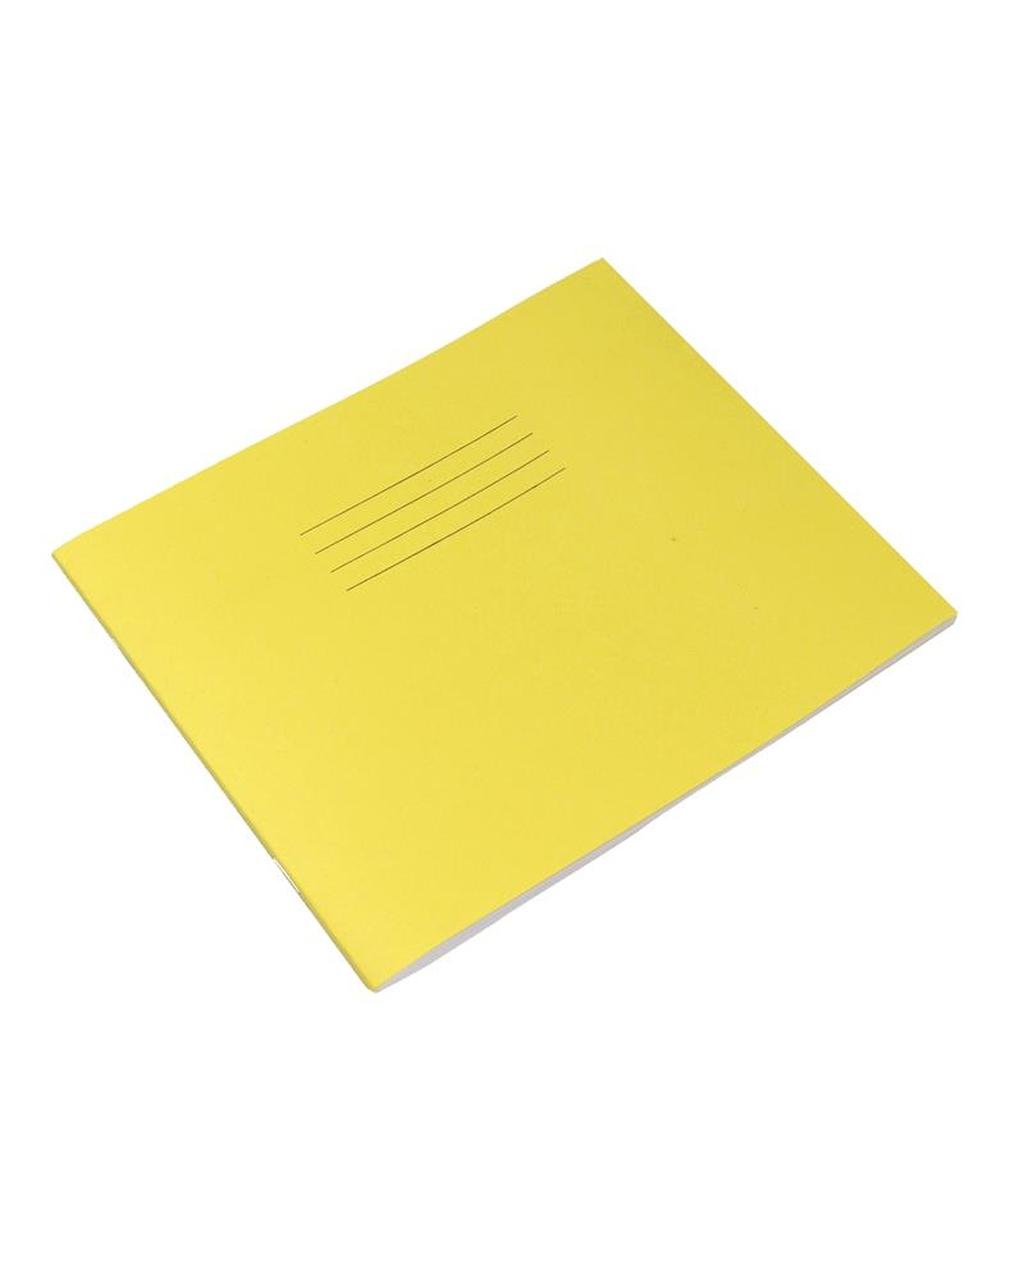 Exercise Book 8 x 6.5 (203 x 165mm) Yellow Cover Half Plain & Half 15mm Ruled 48 Pages